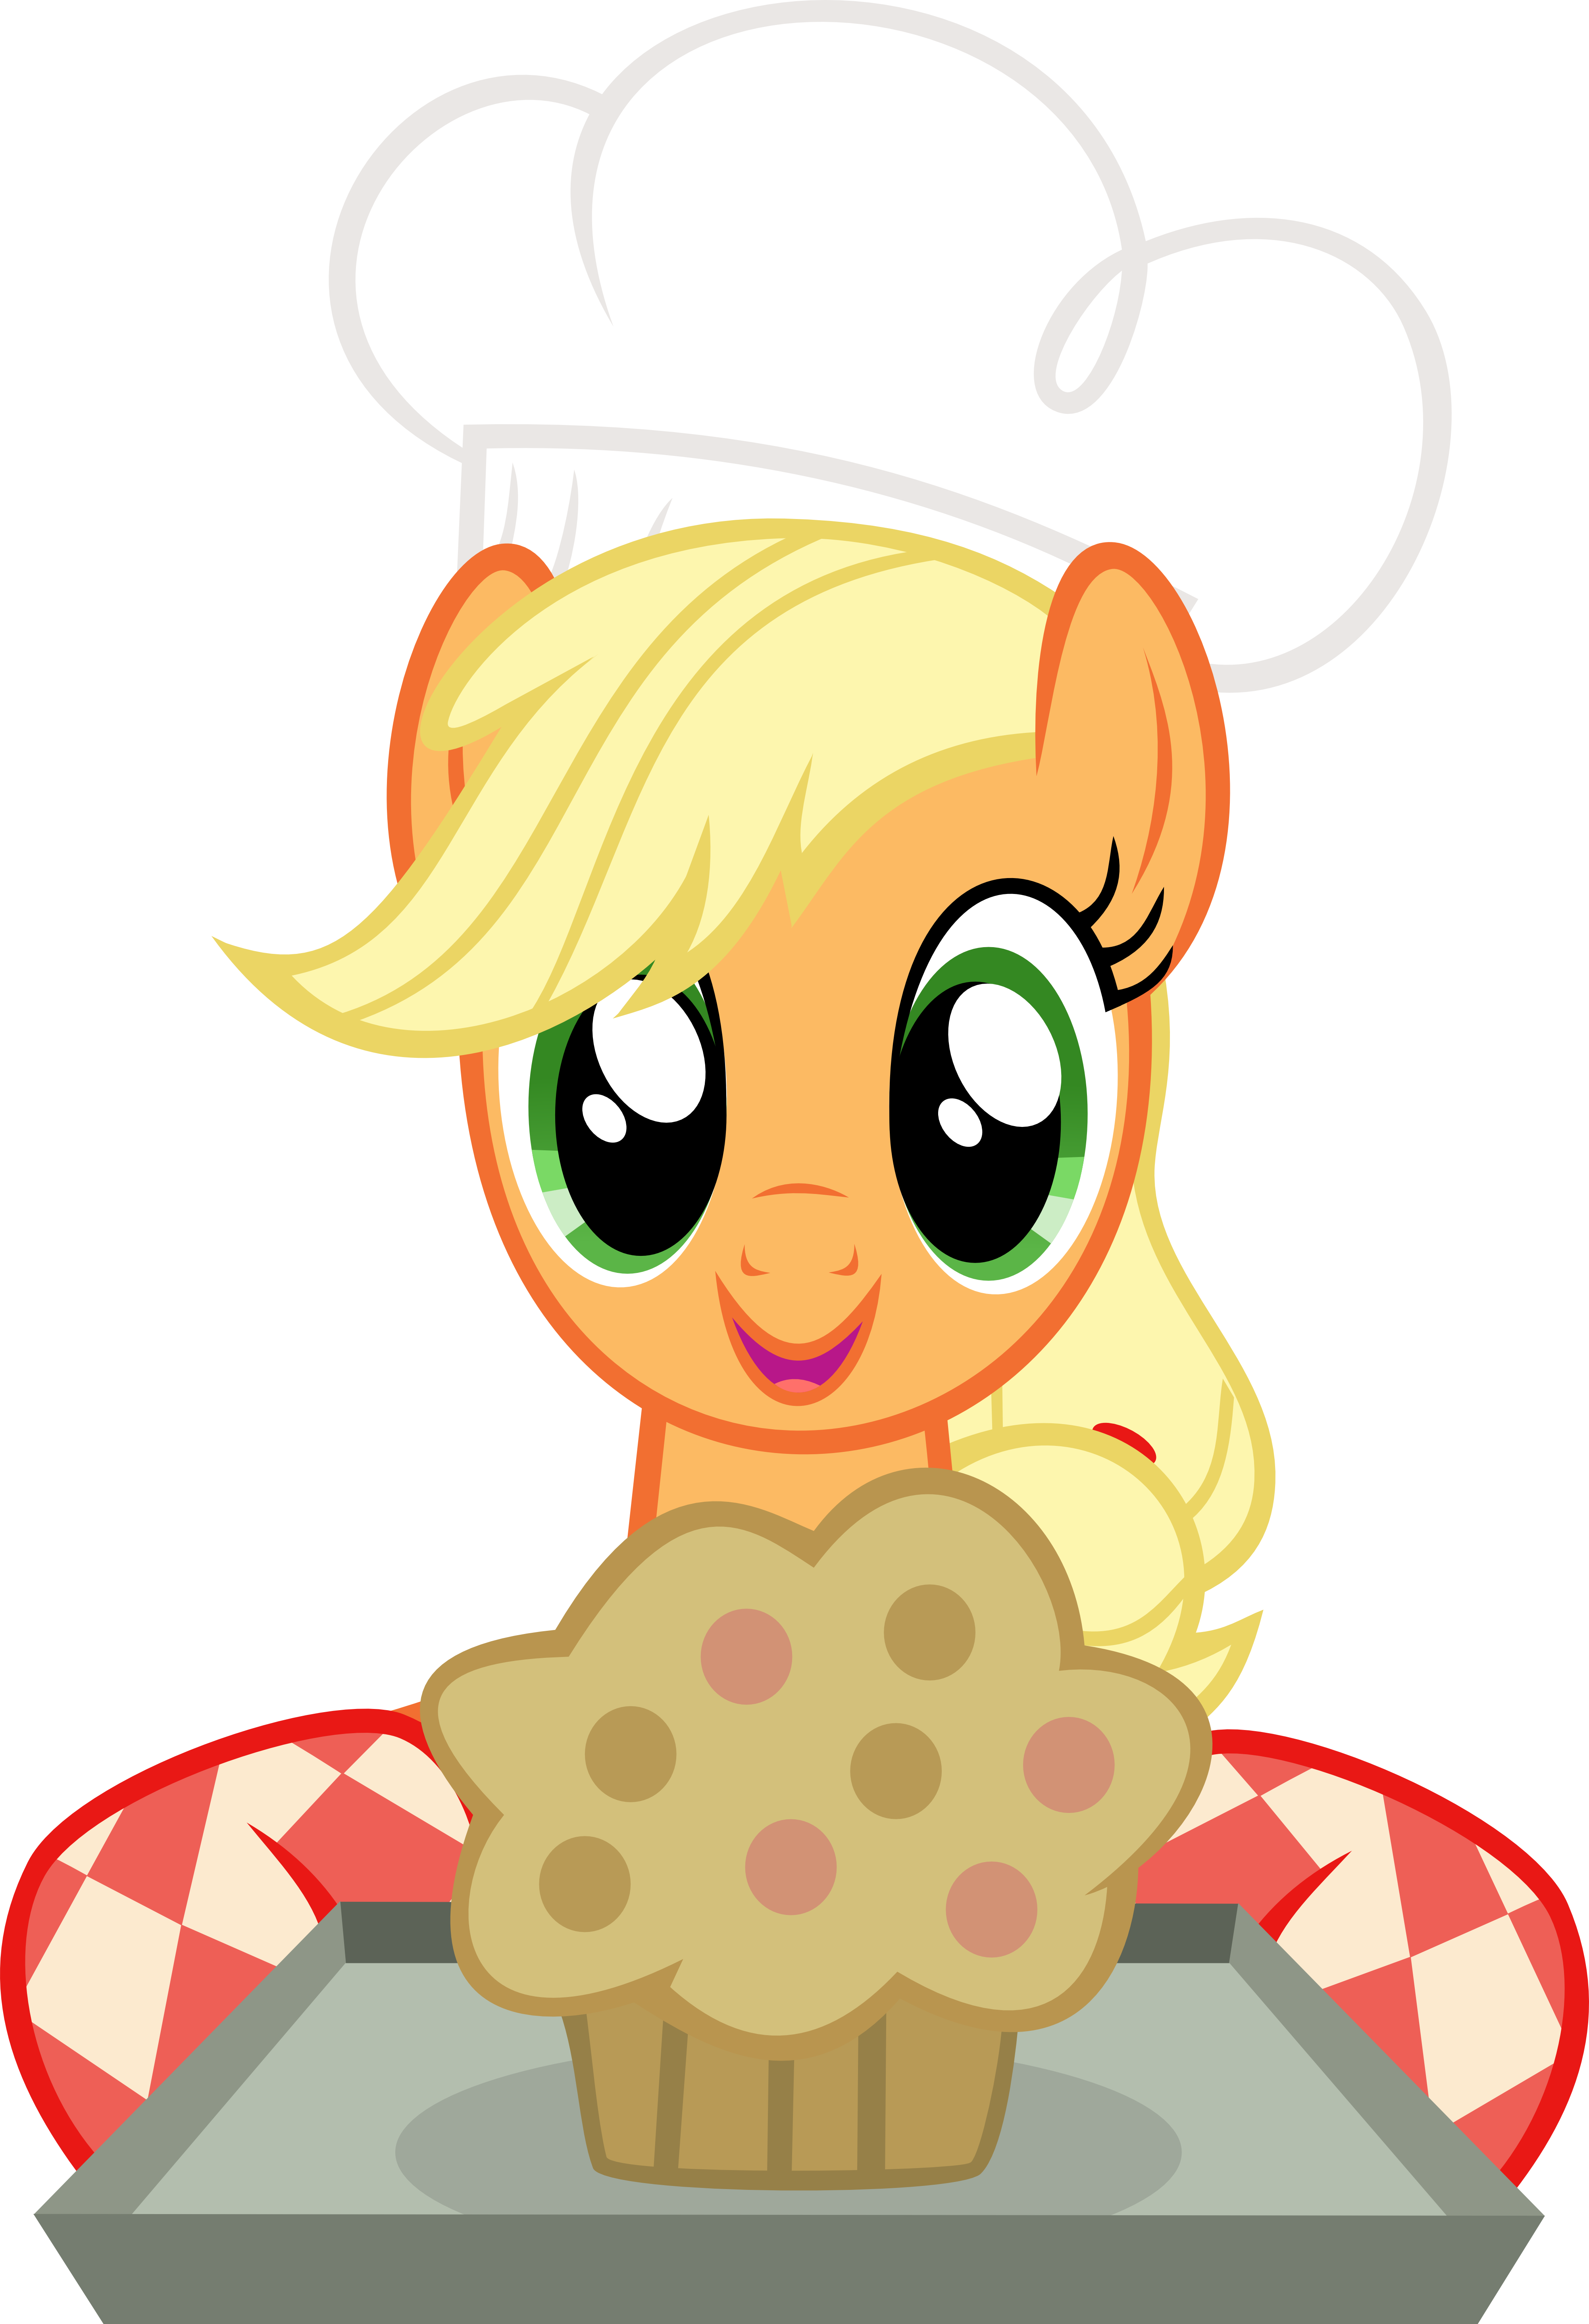 Muffins clipart mom cooking. Image my little pony